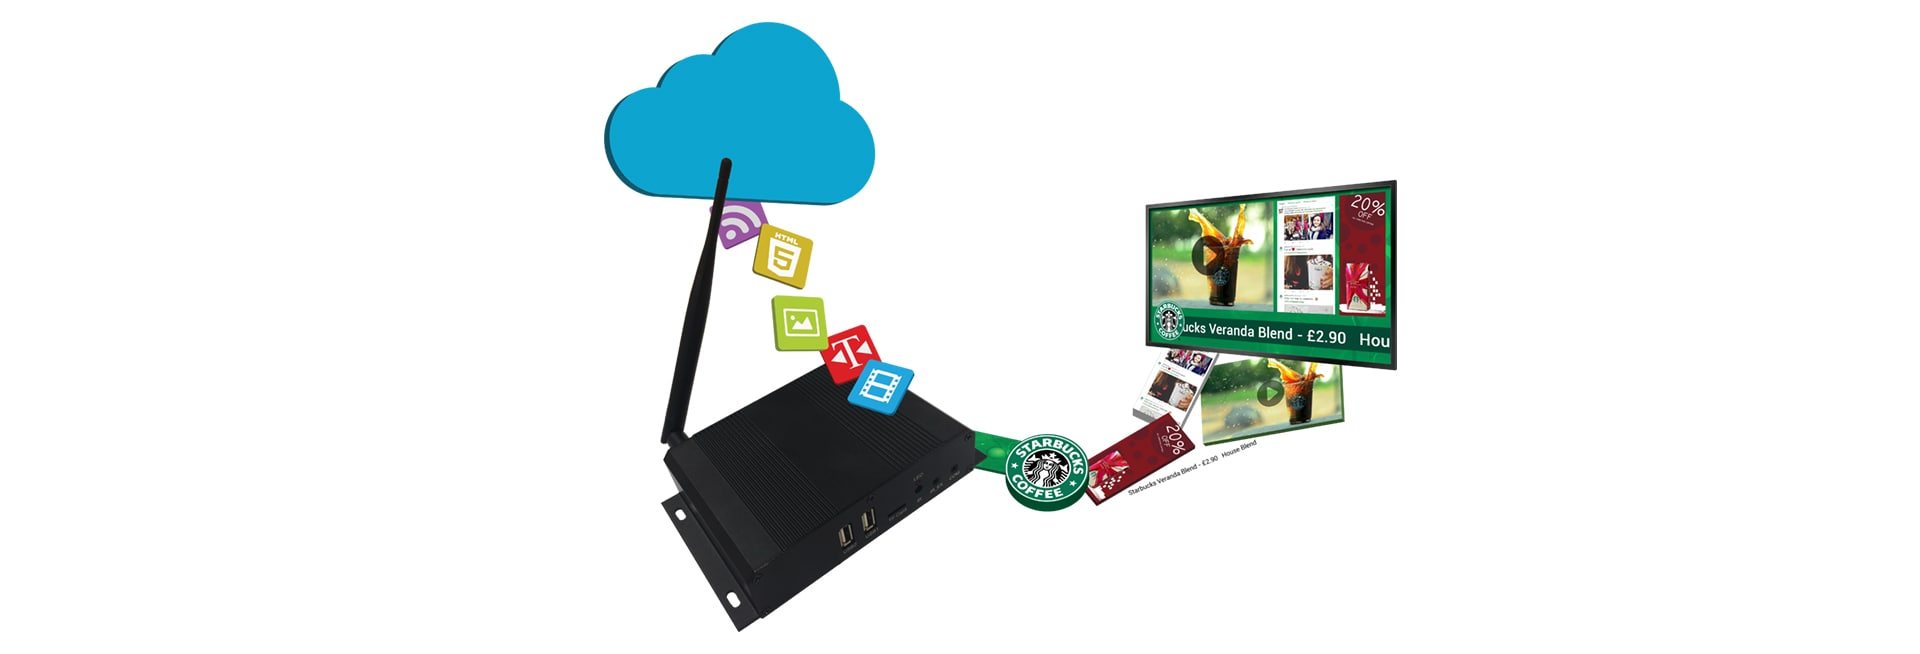 standalone android digital signage  media player in kenya